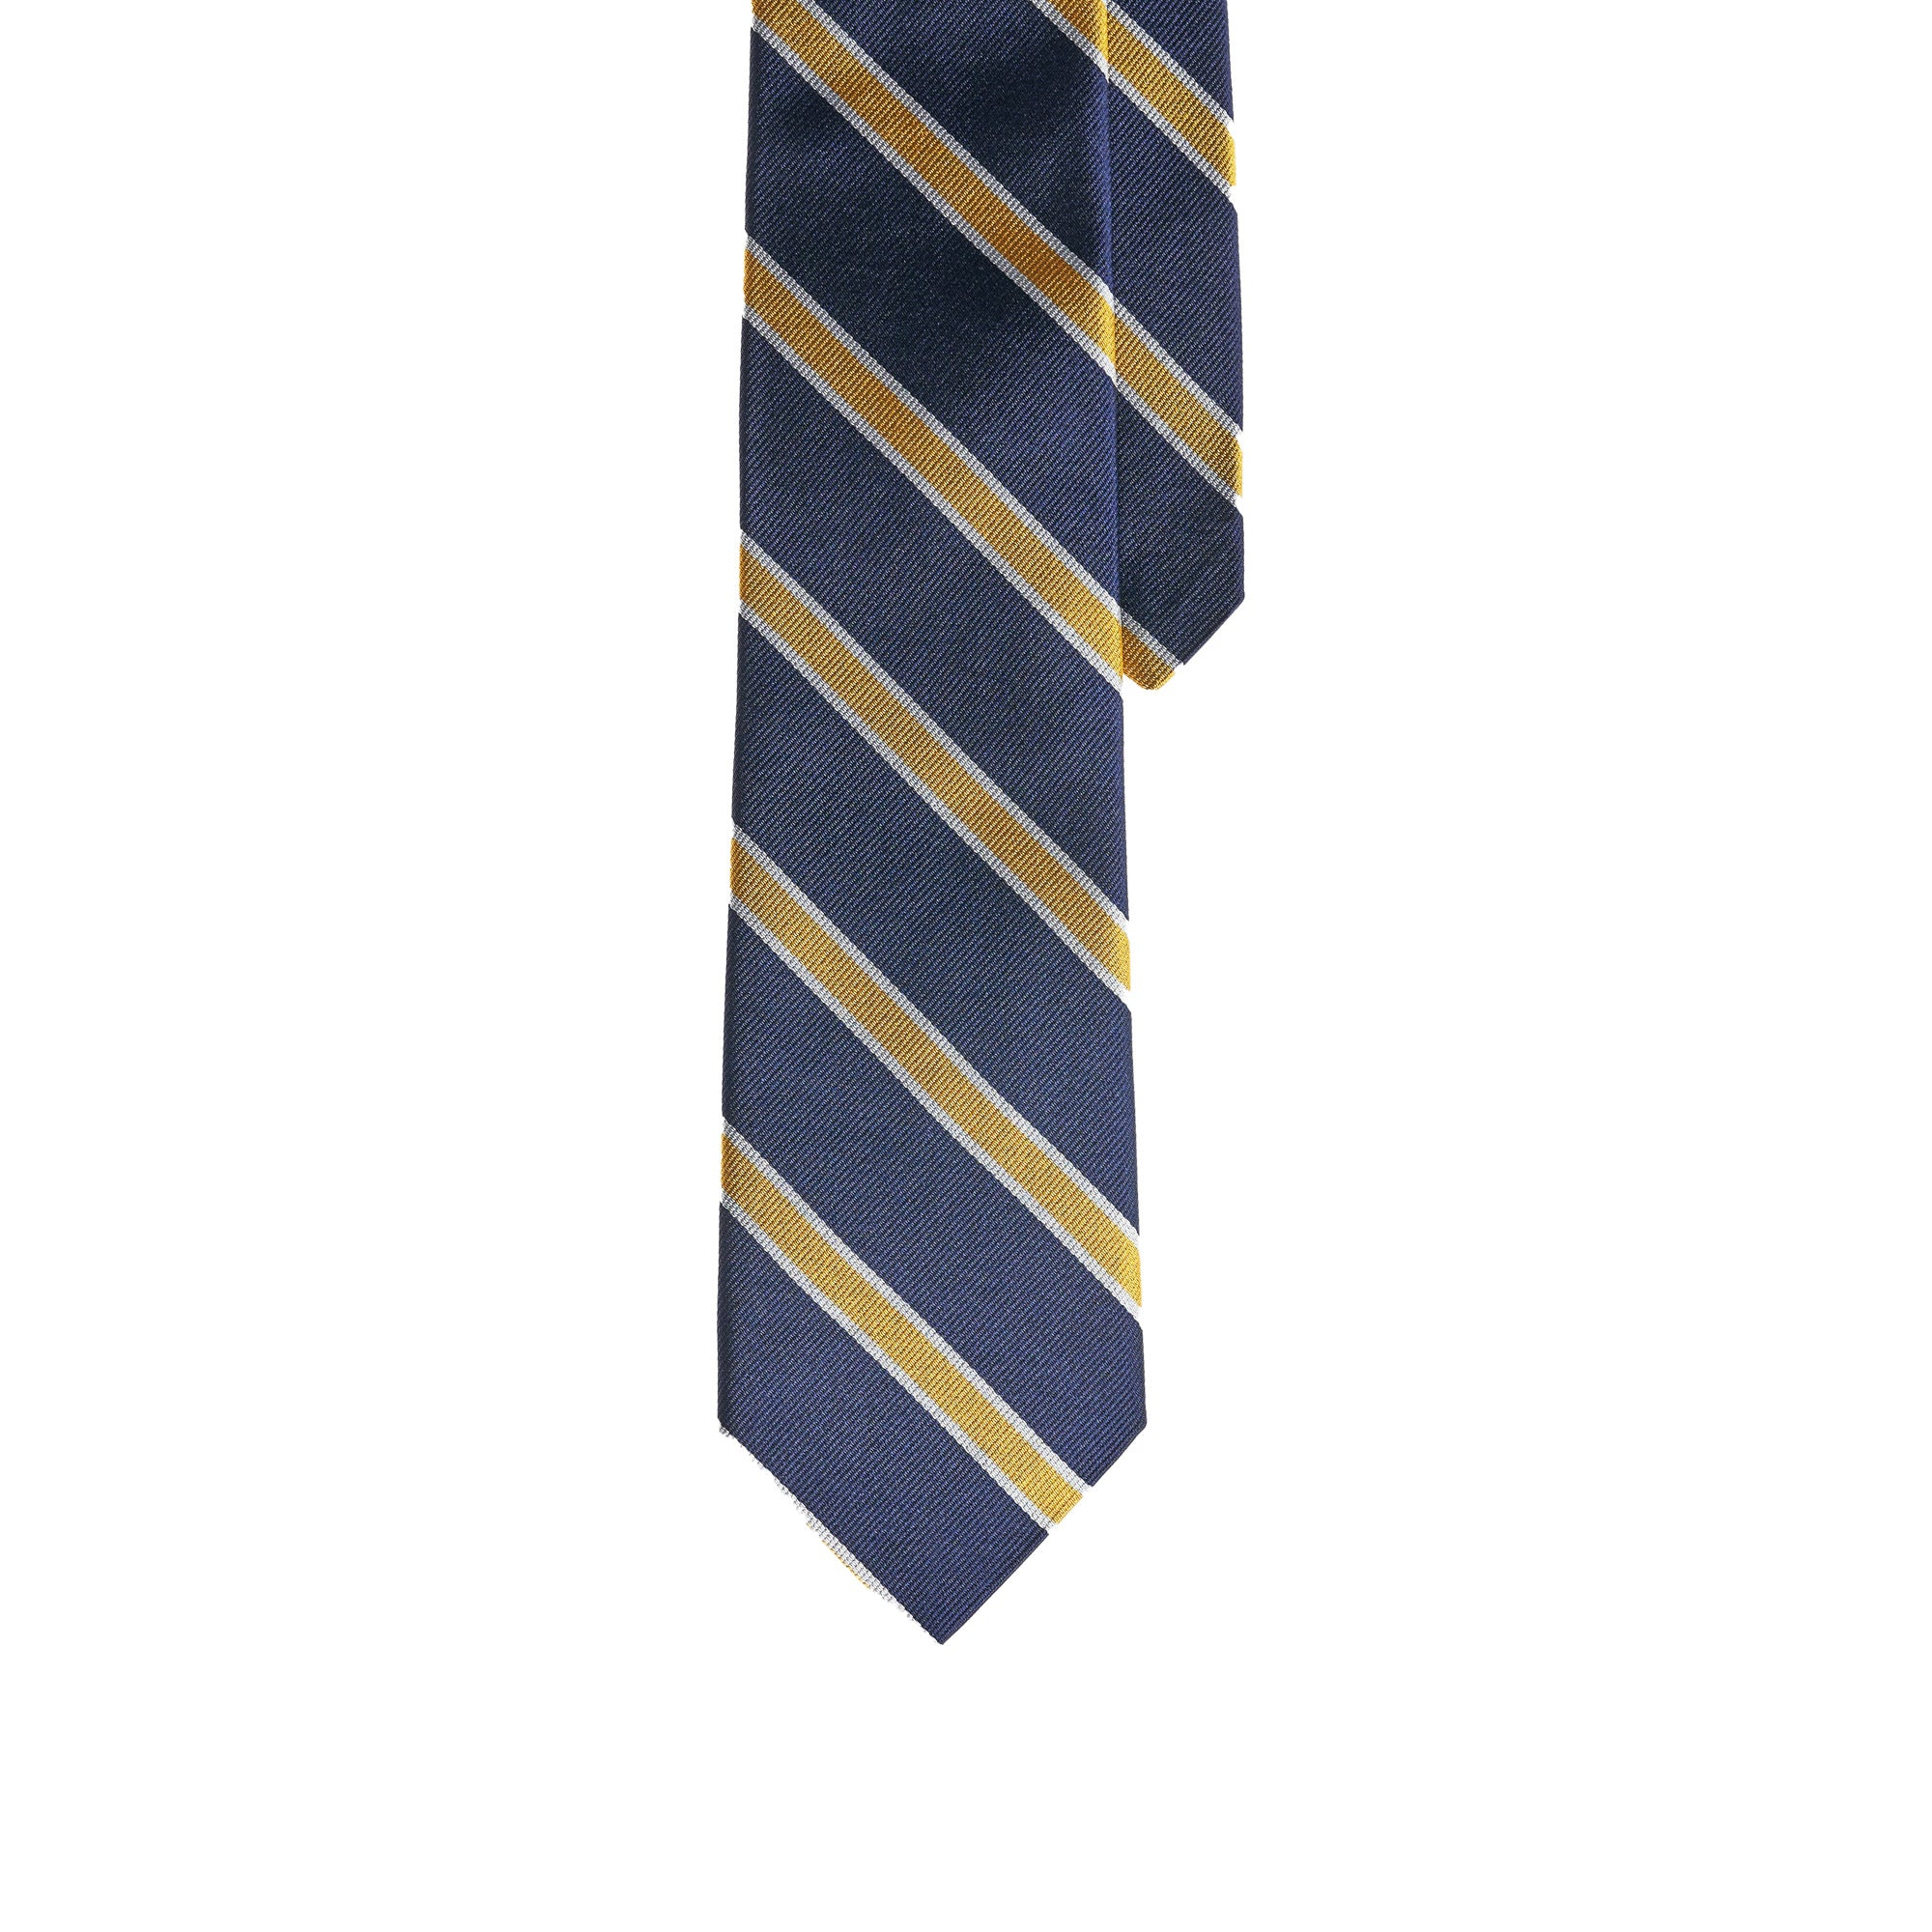 Ties - Navy Gold Stripe